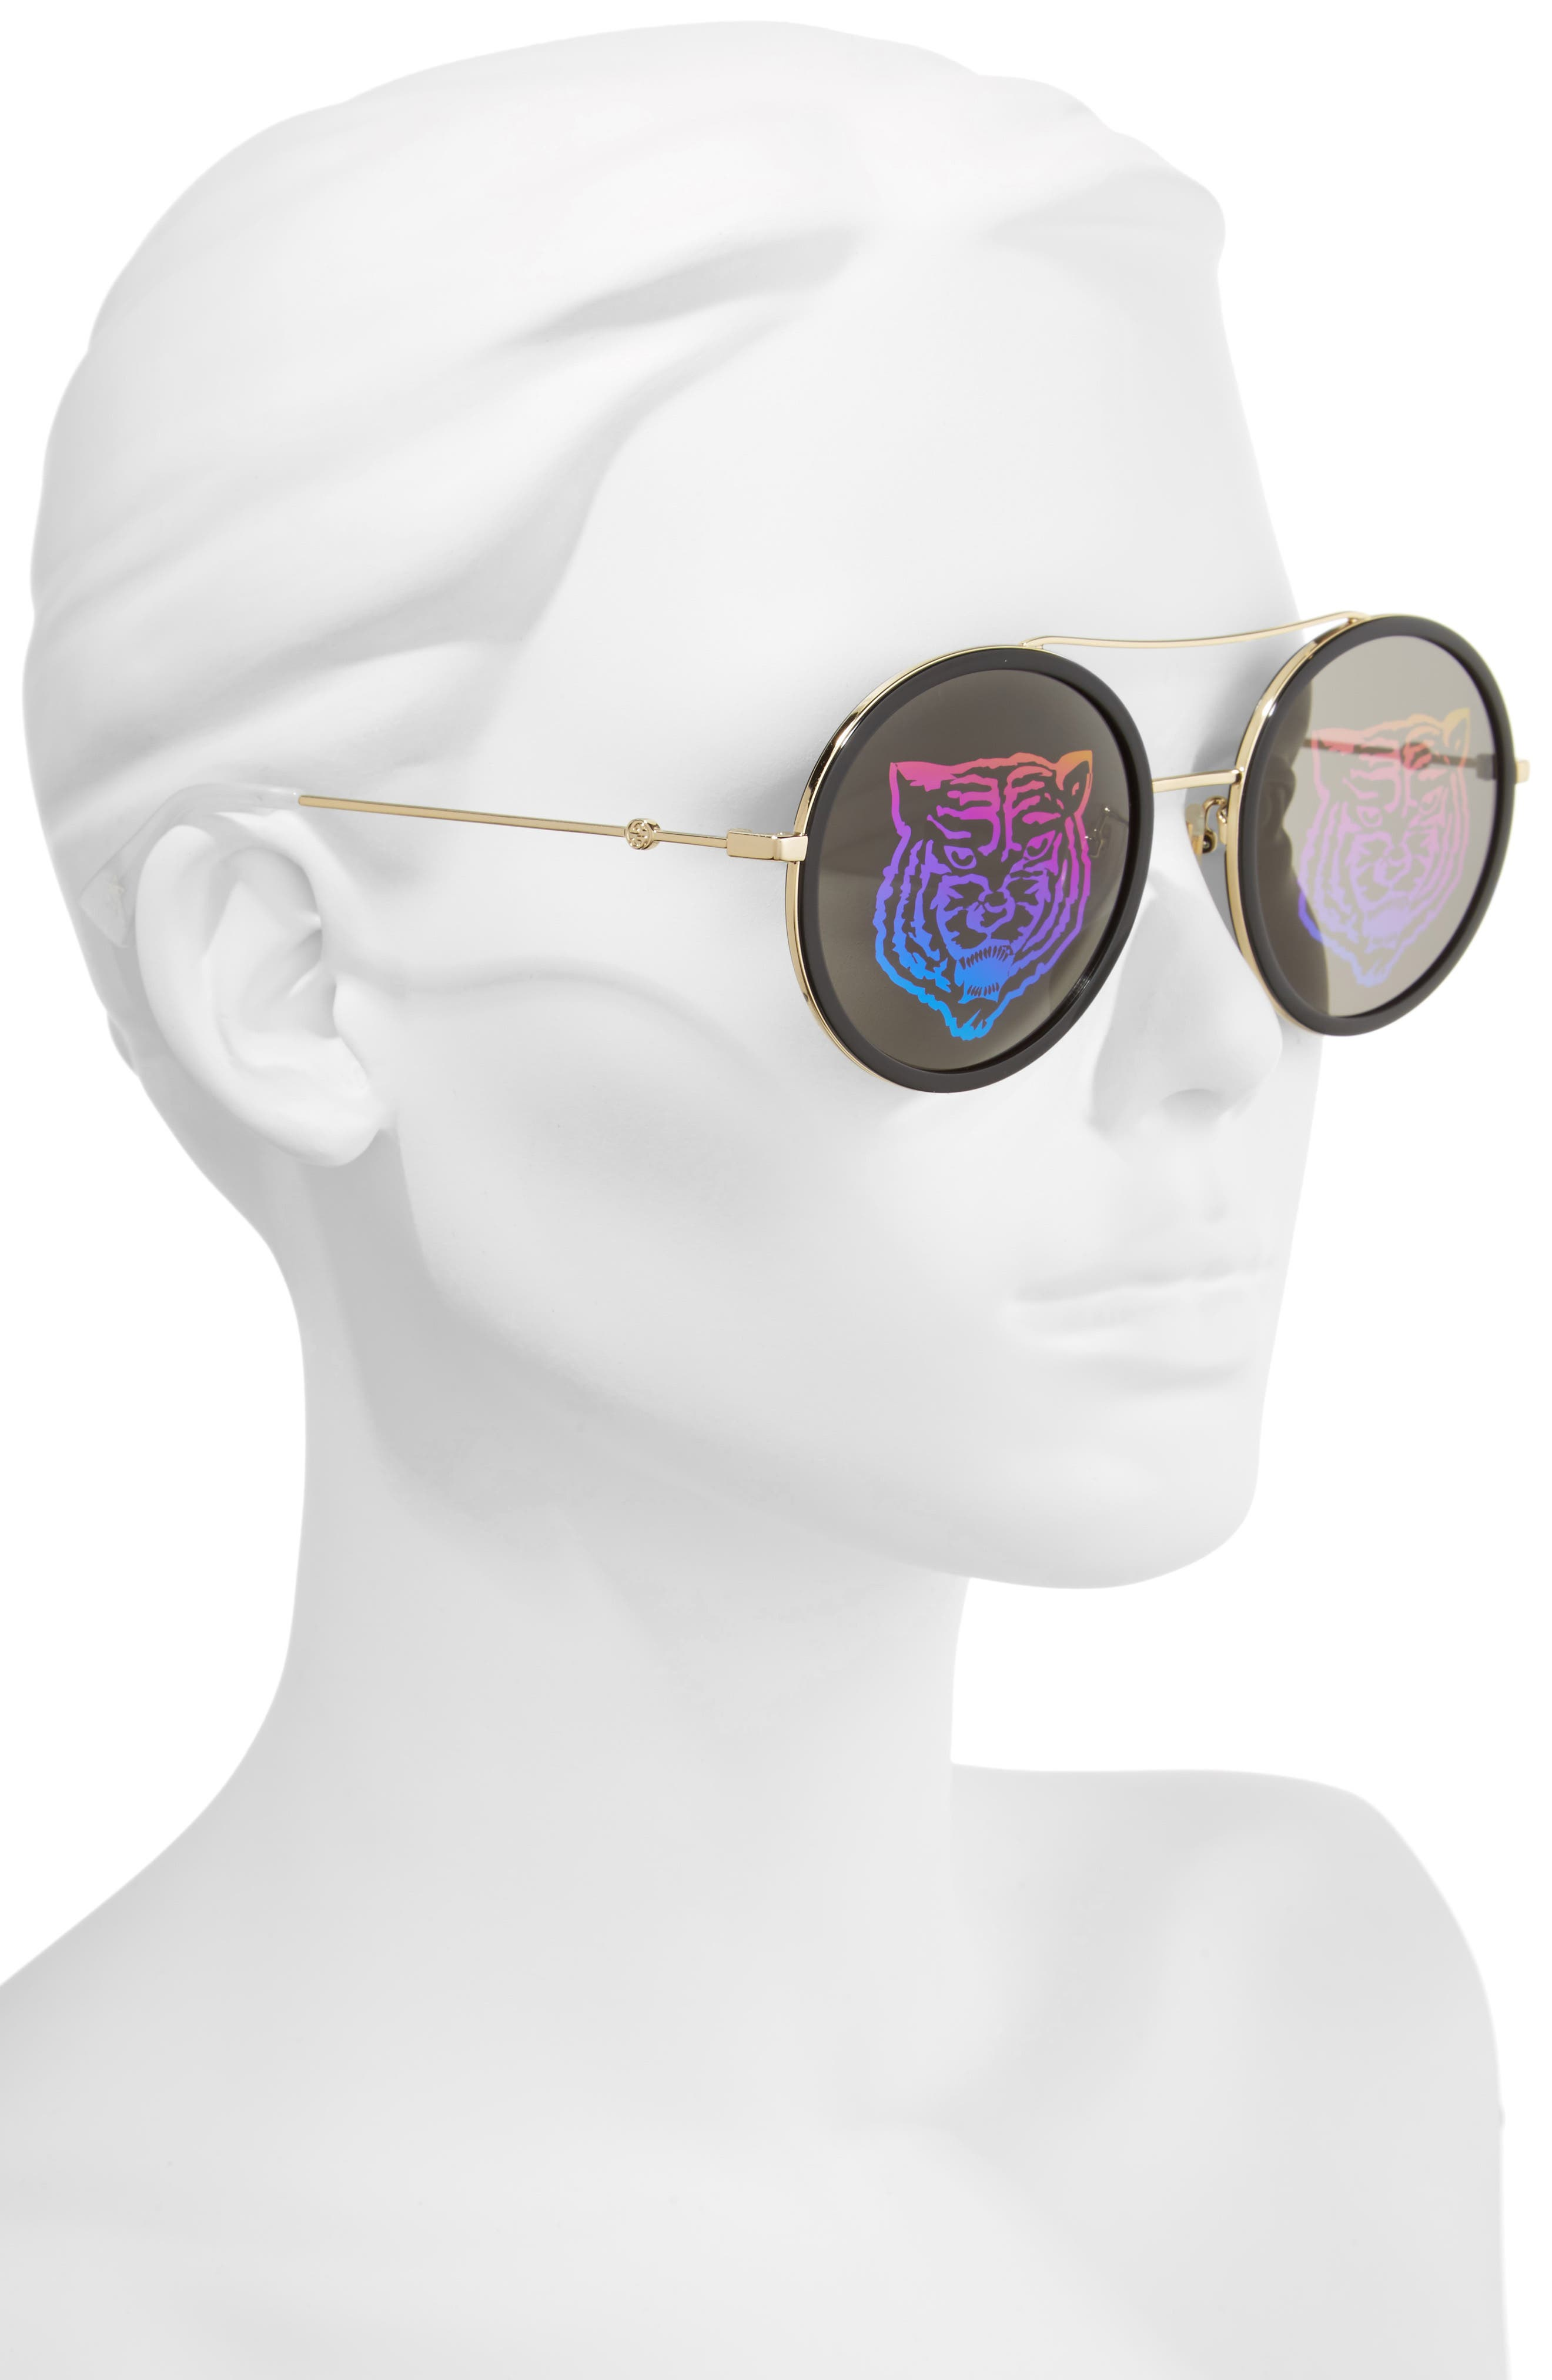 56mm Round Mirrored Aviator Sunglasses,                             Alternate thumbnail 2, color,                             GOLD/ TIGER